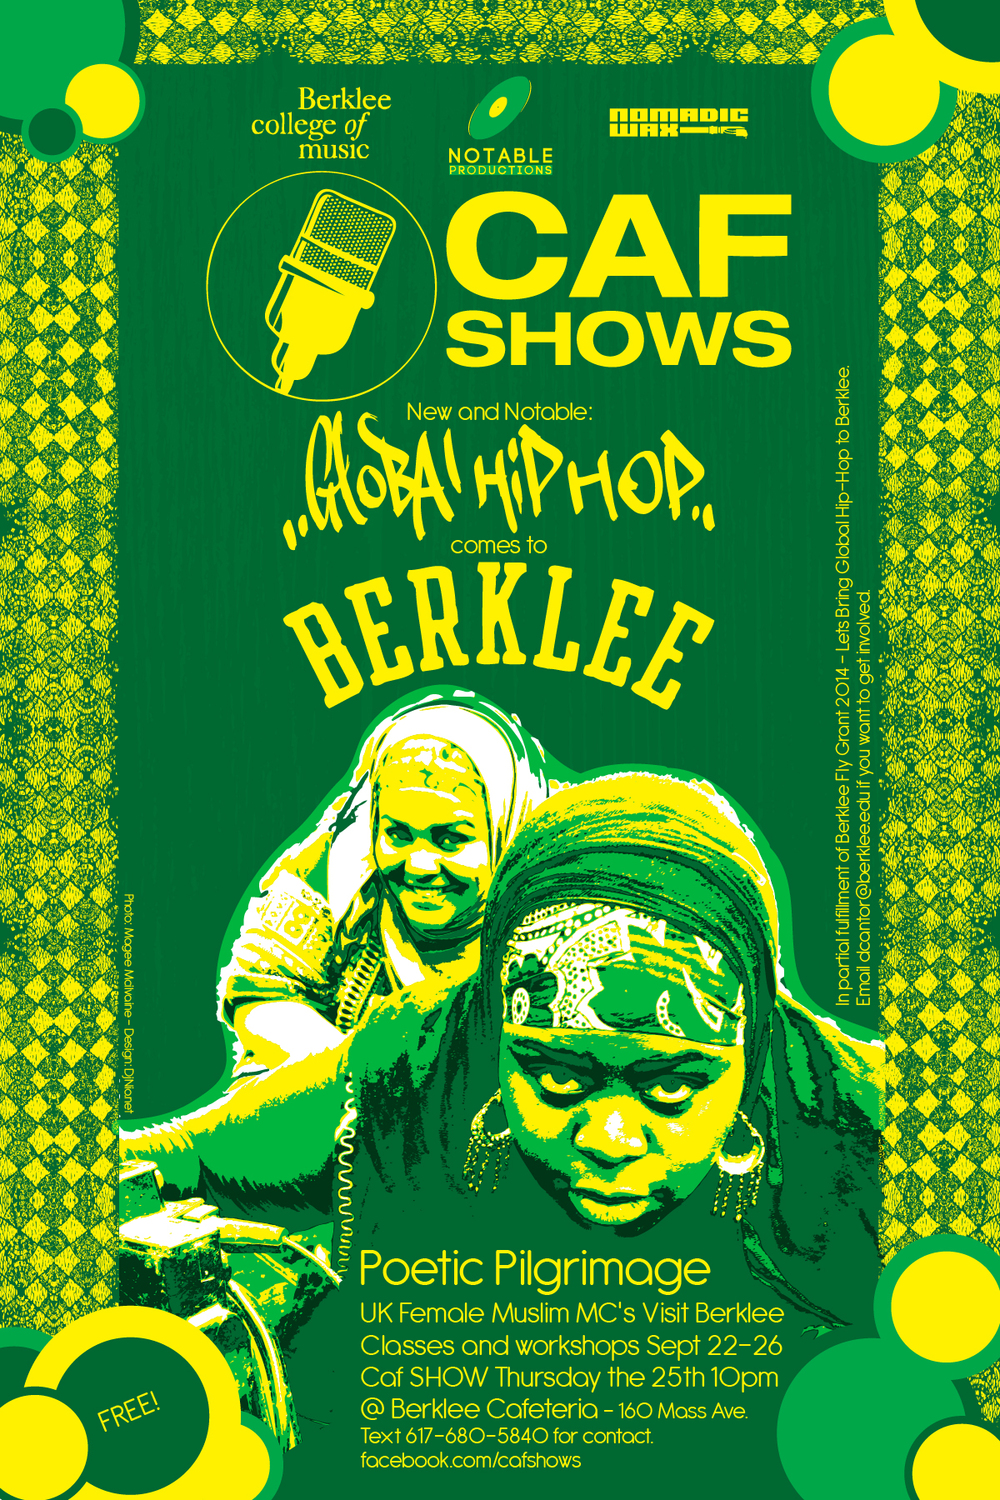 Global Hip Hop Event at Berklee College